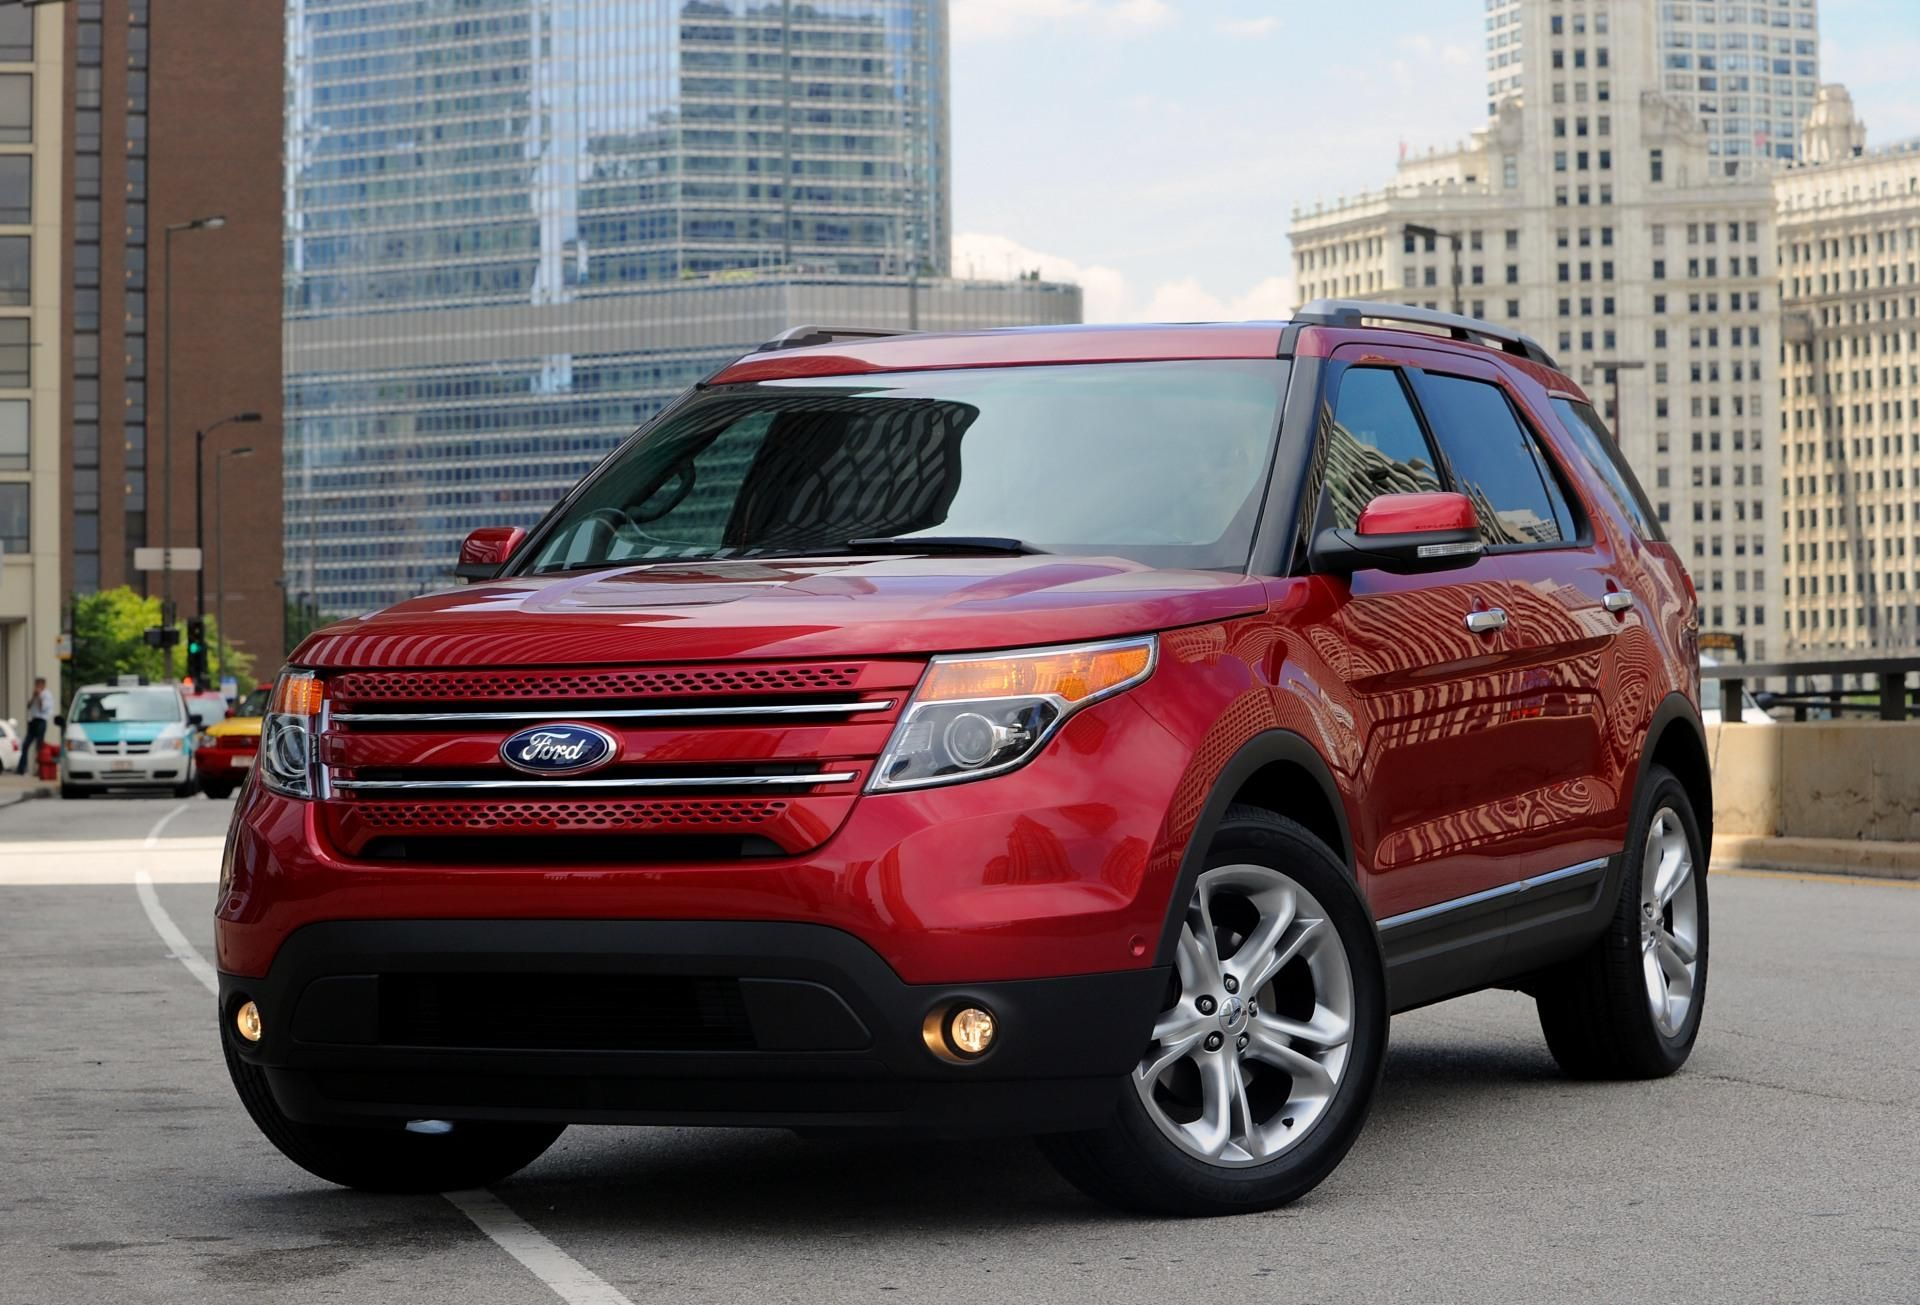 Ford Explorer Candy Apple Red Seeing Red Pinterest